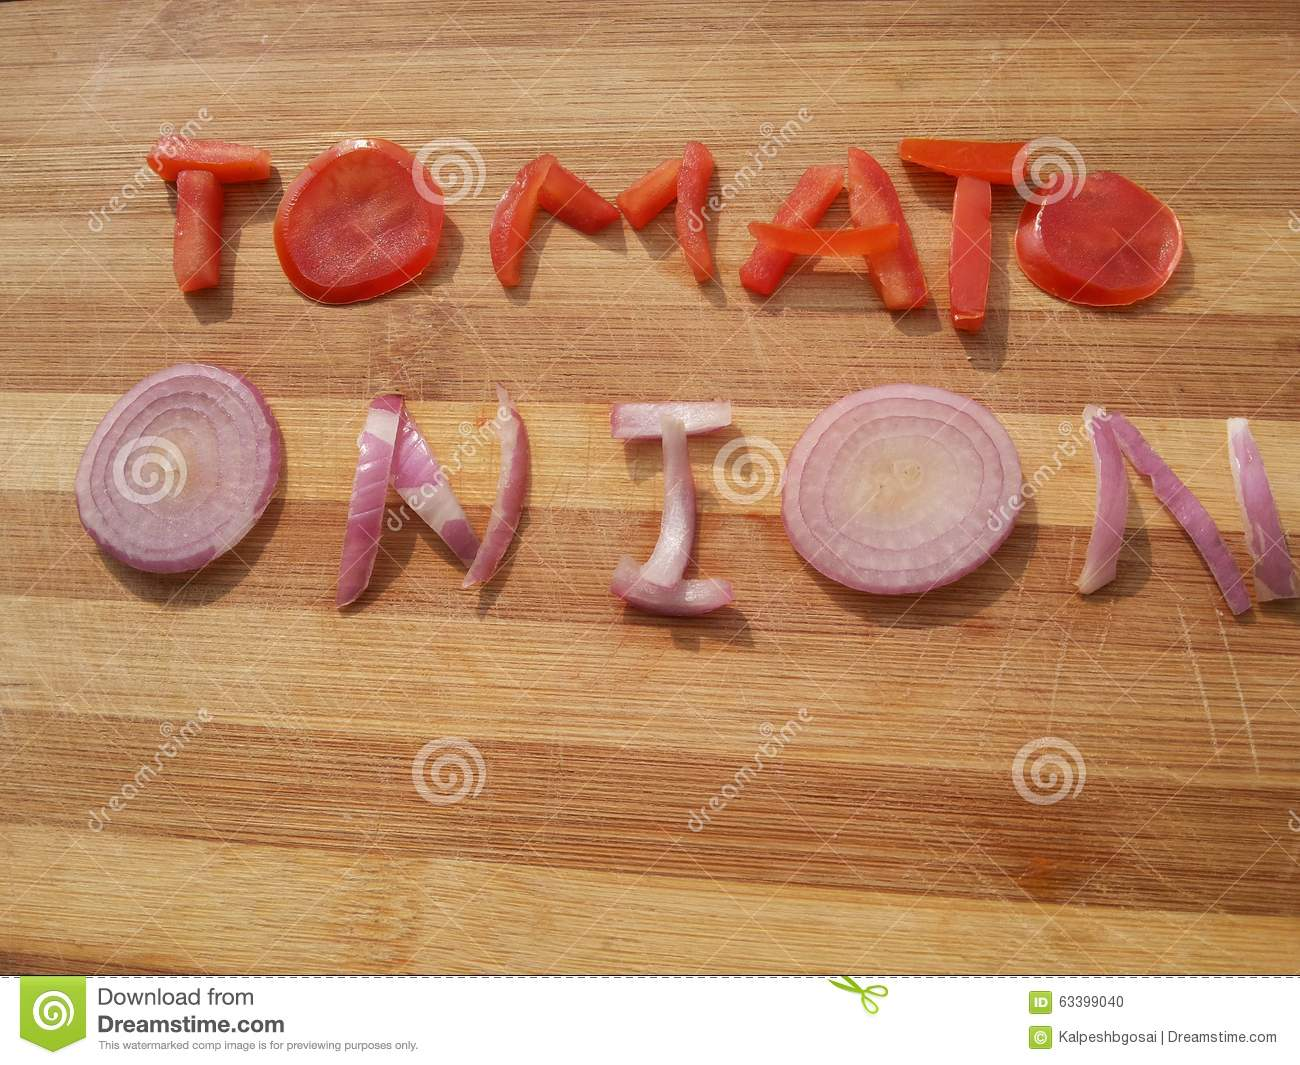 Word tomato written with green and red tomatoes on wooden